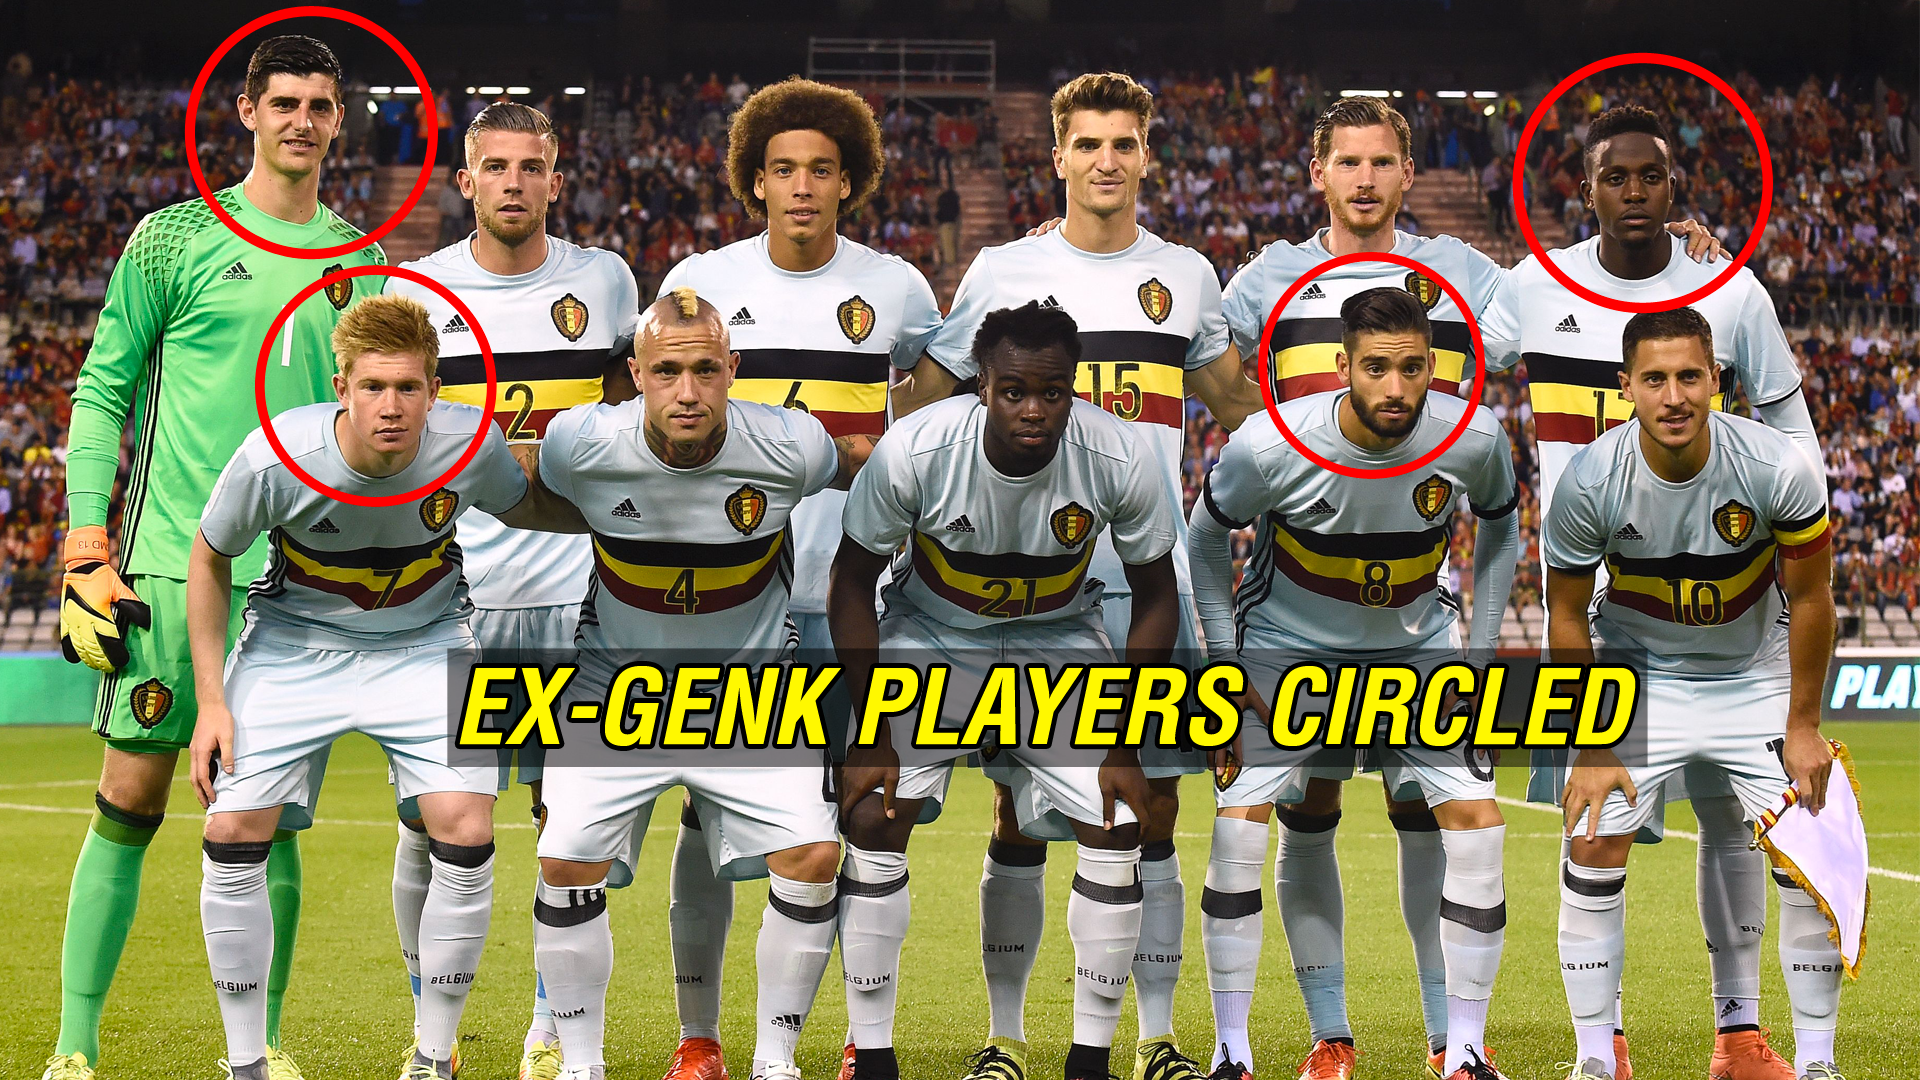 From De Bruyne to Courtois - How Genk's 'university of football' became  Europa League contenders